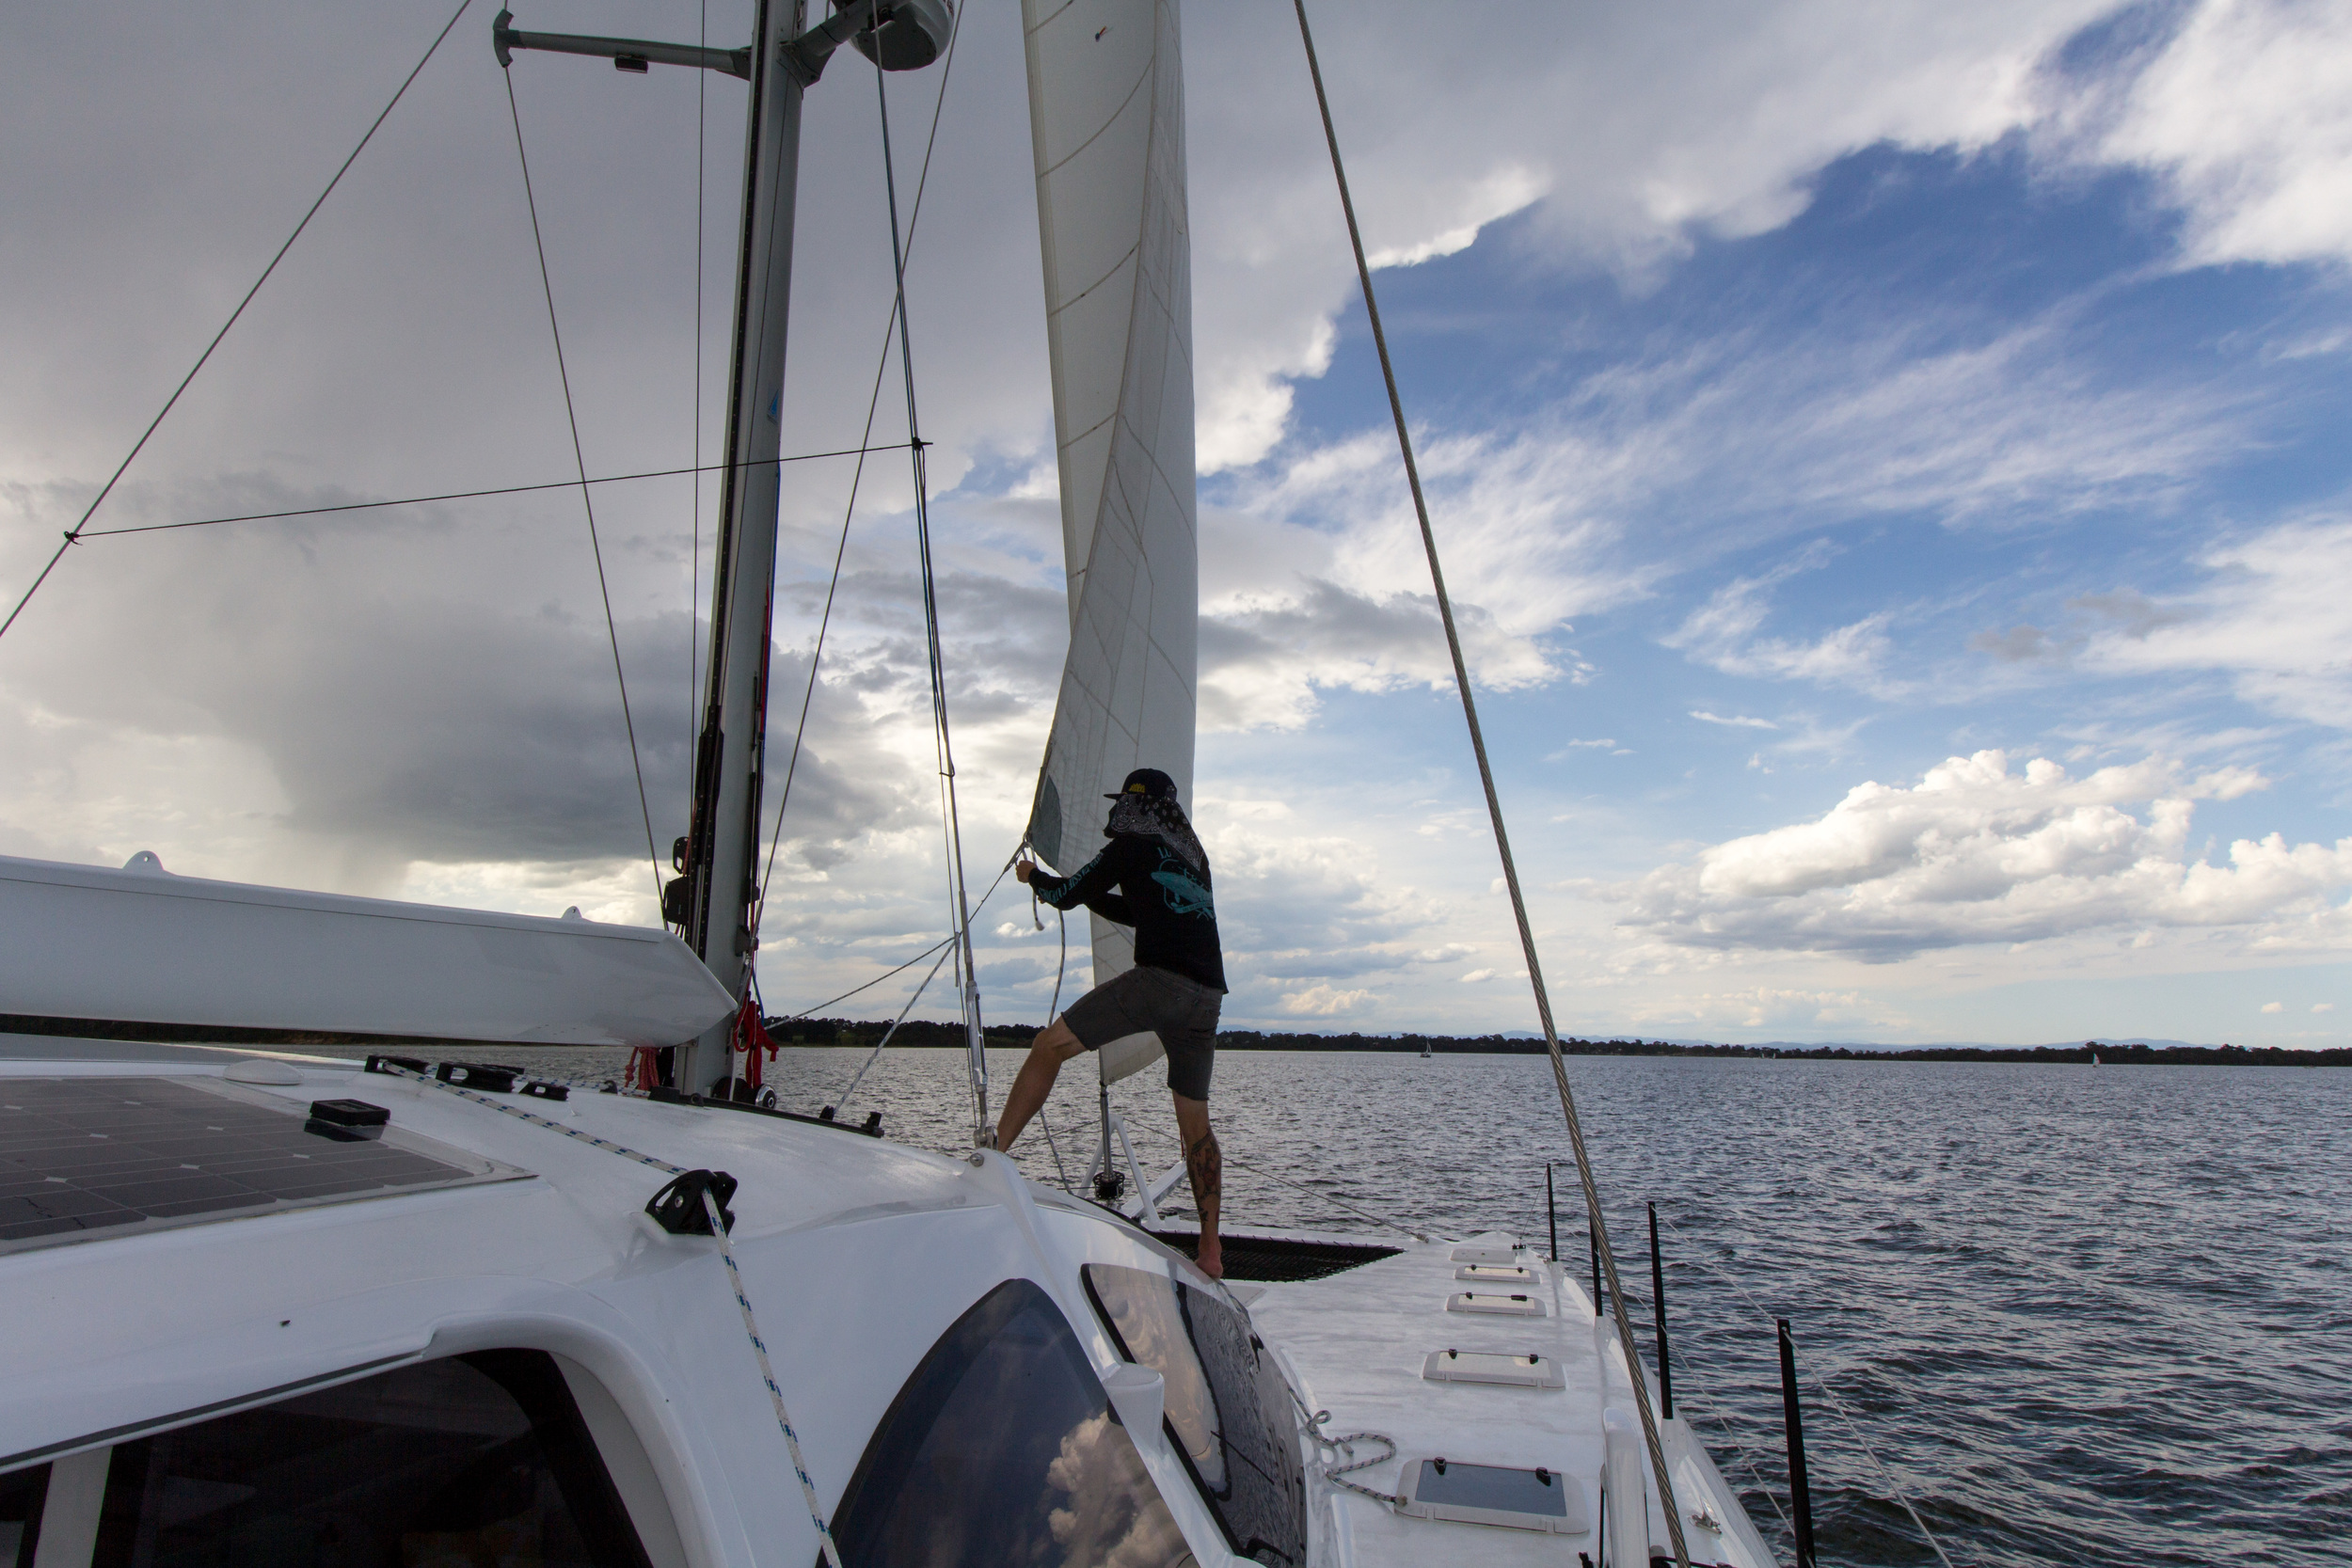 Barber hauling our borrowed headsail to get the maximum speed out of the slight breeze we had. Made 6.3 knots in 12.8 knots of breeze.